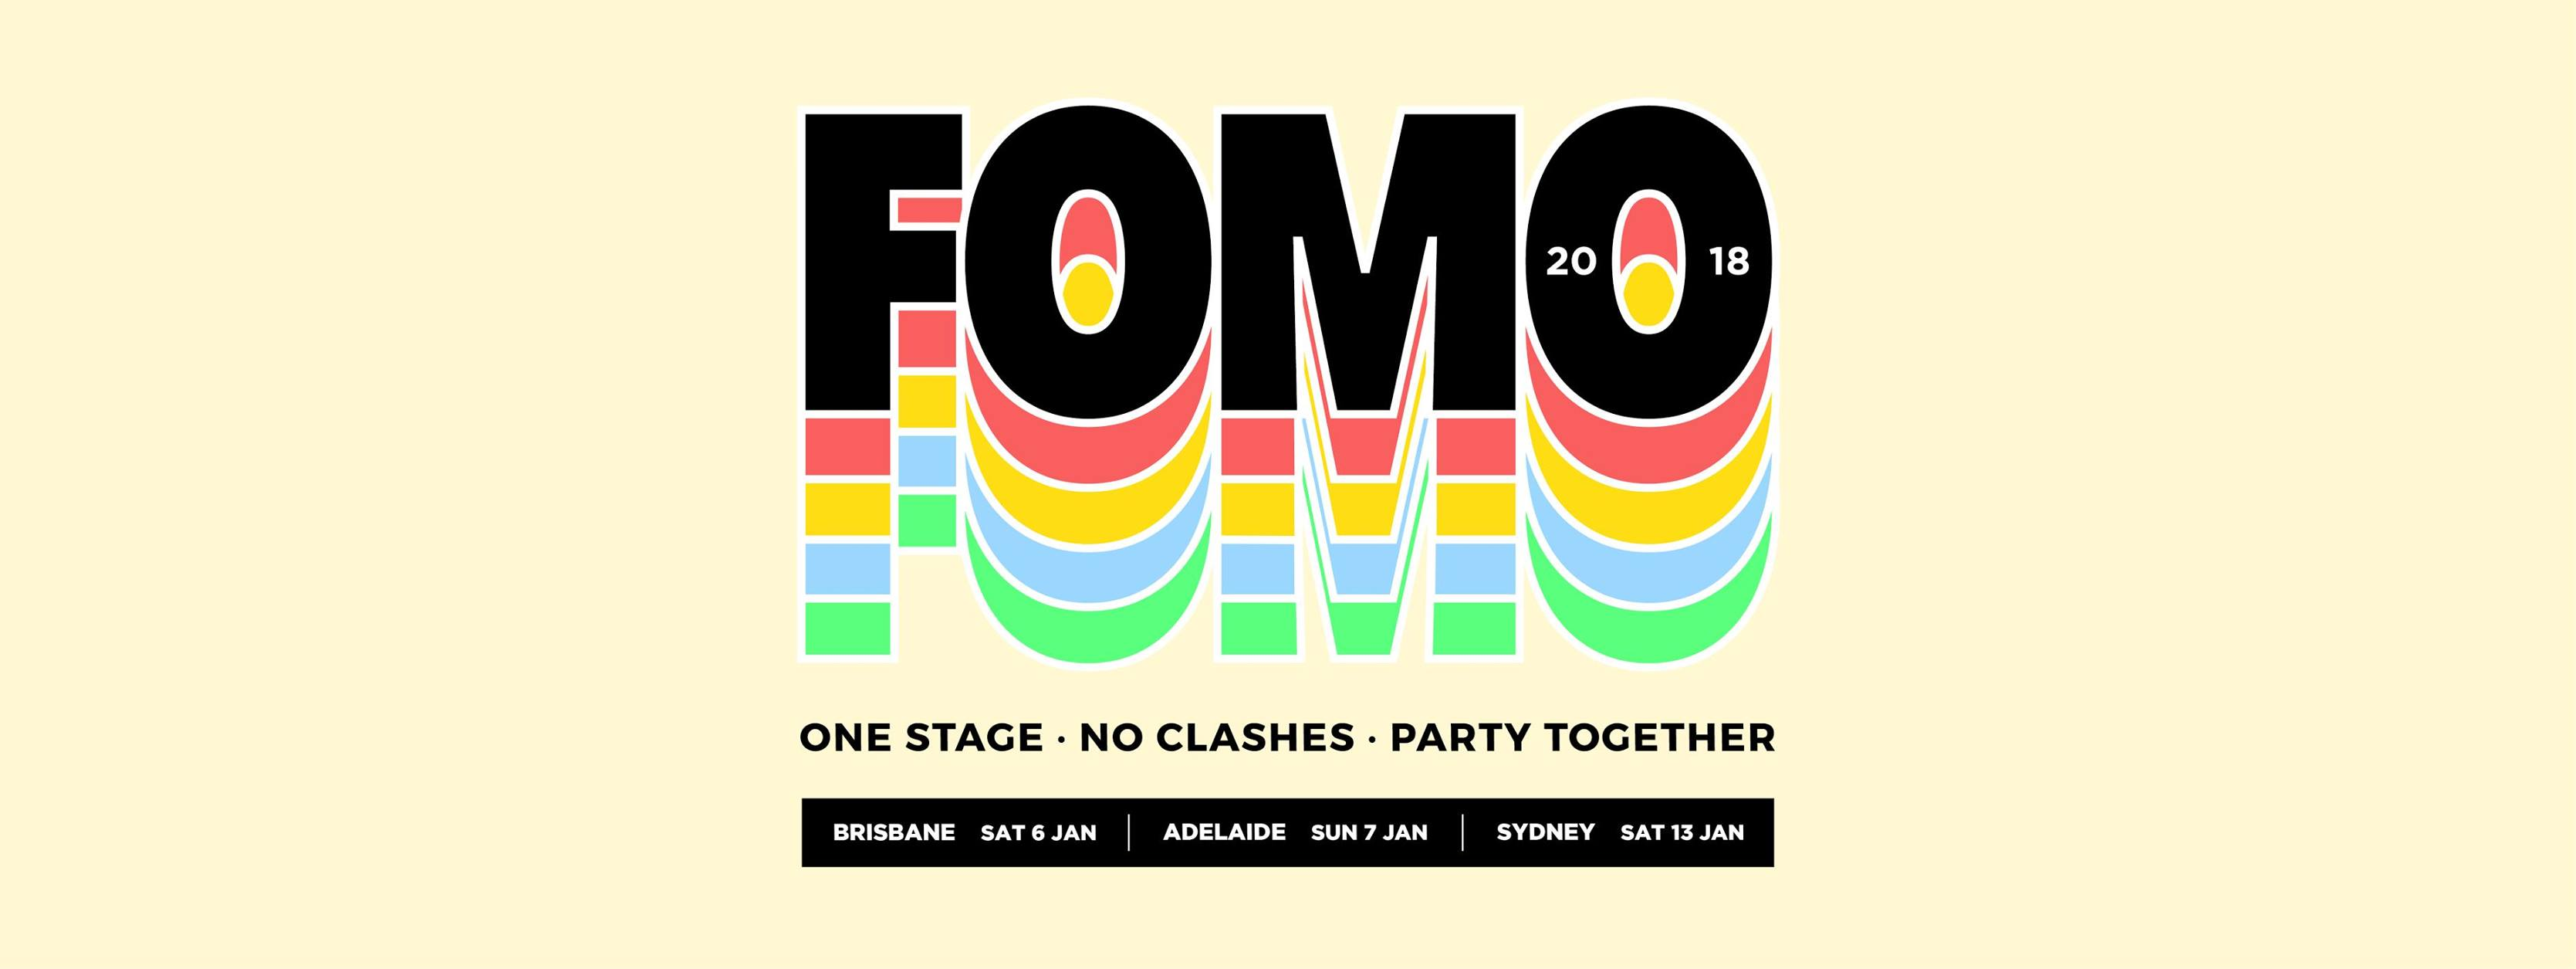 Application for FOMO 2018 - AUSTRALIA WIDE from Ticketbooth